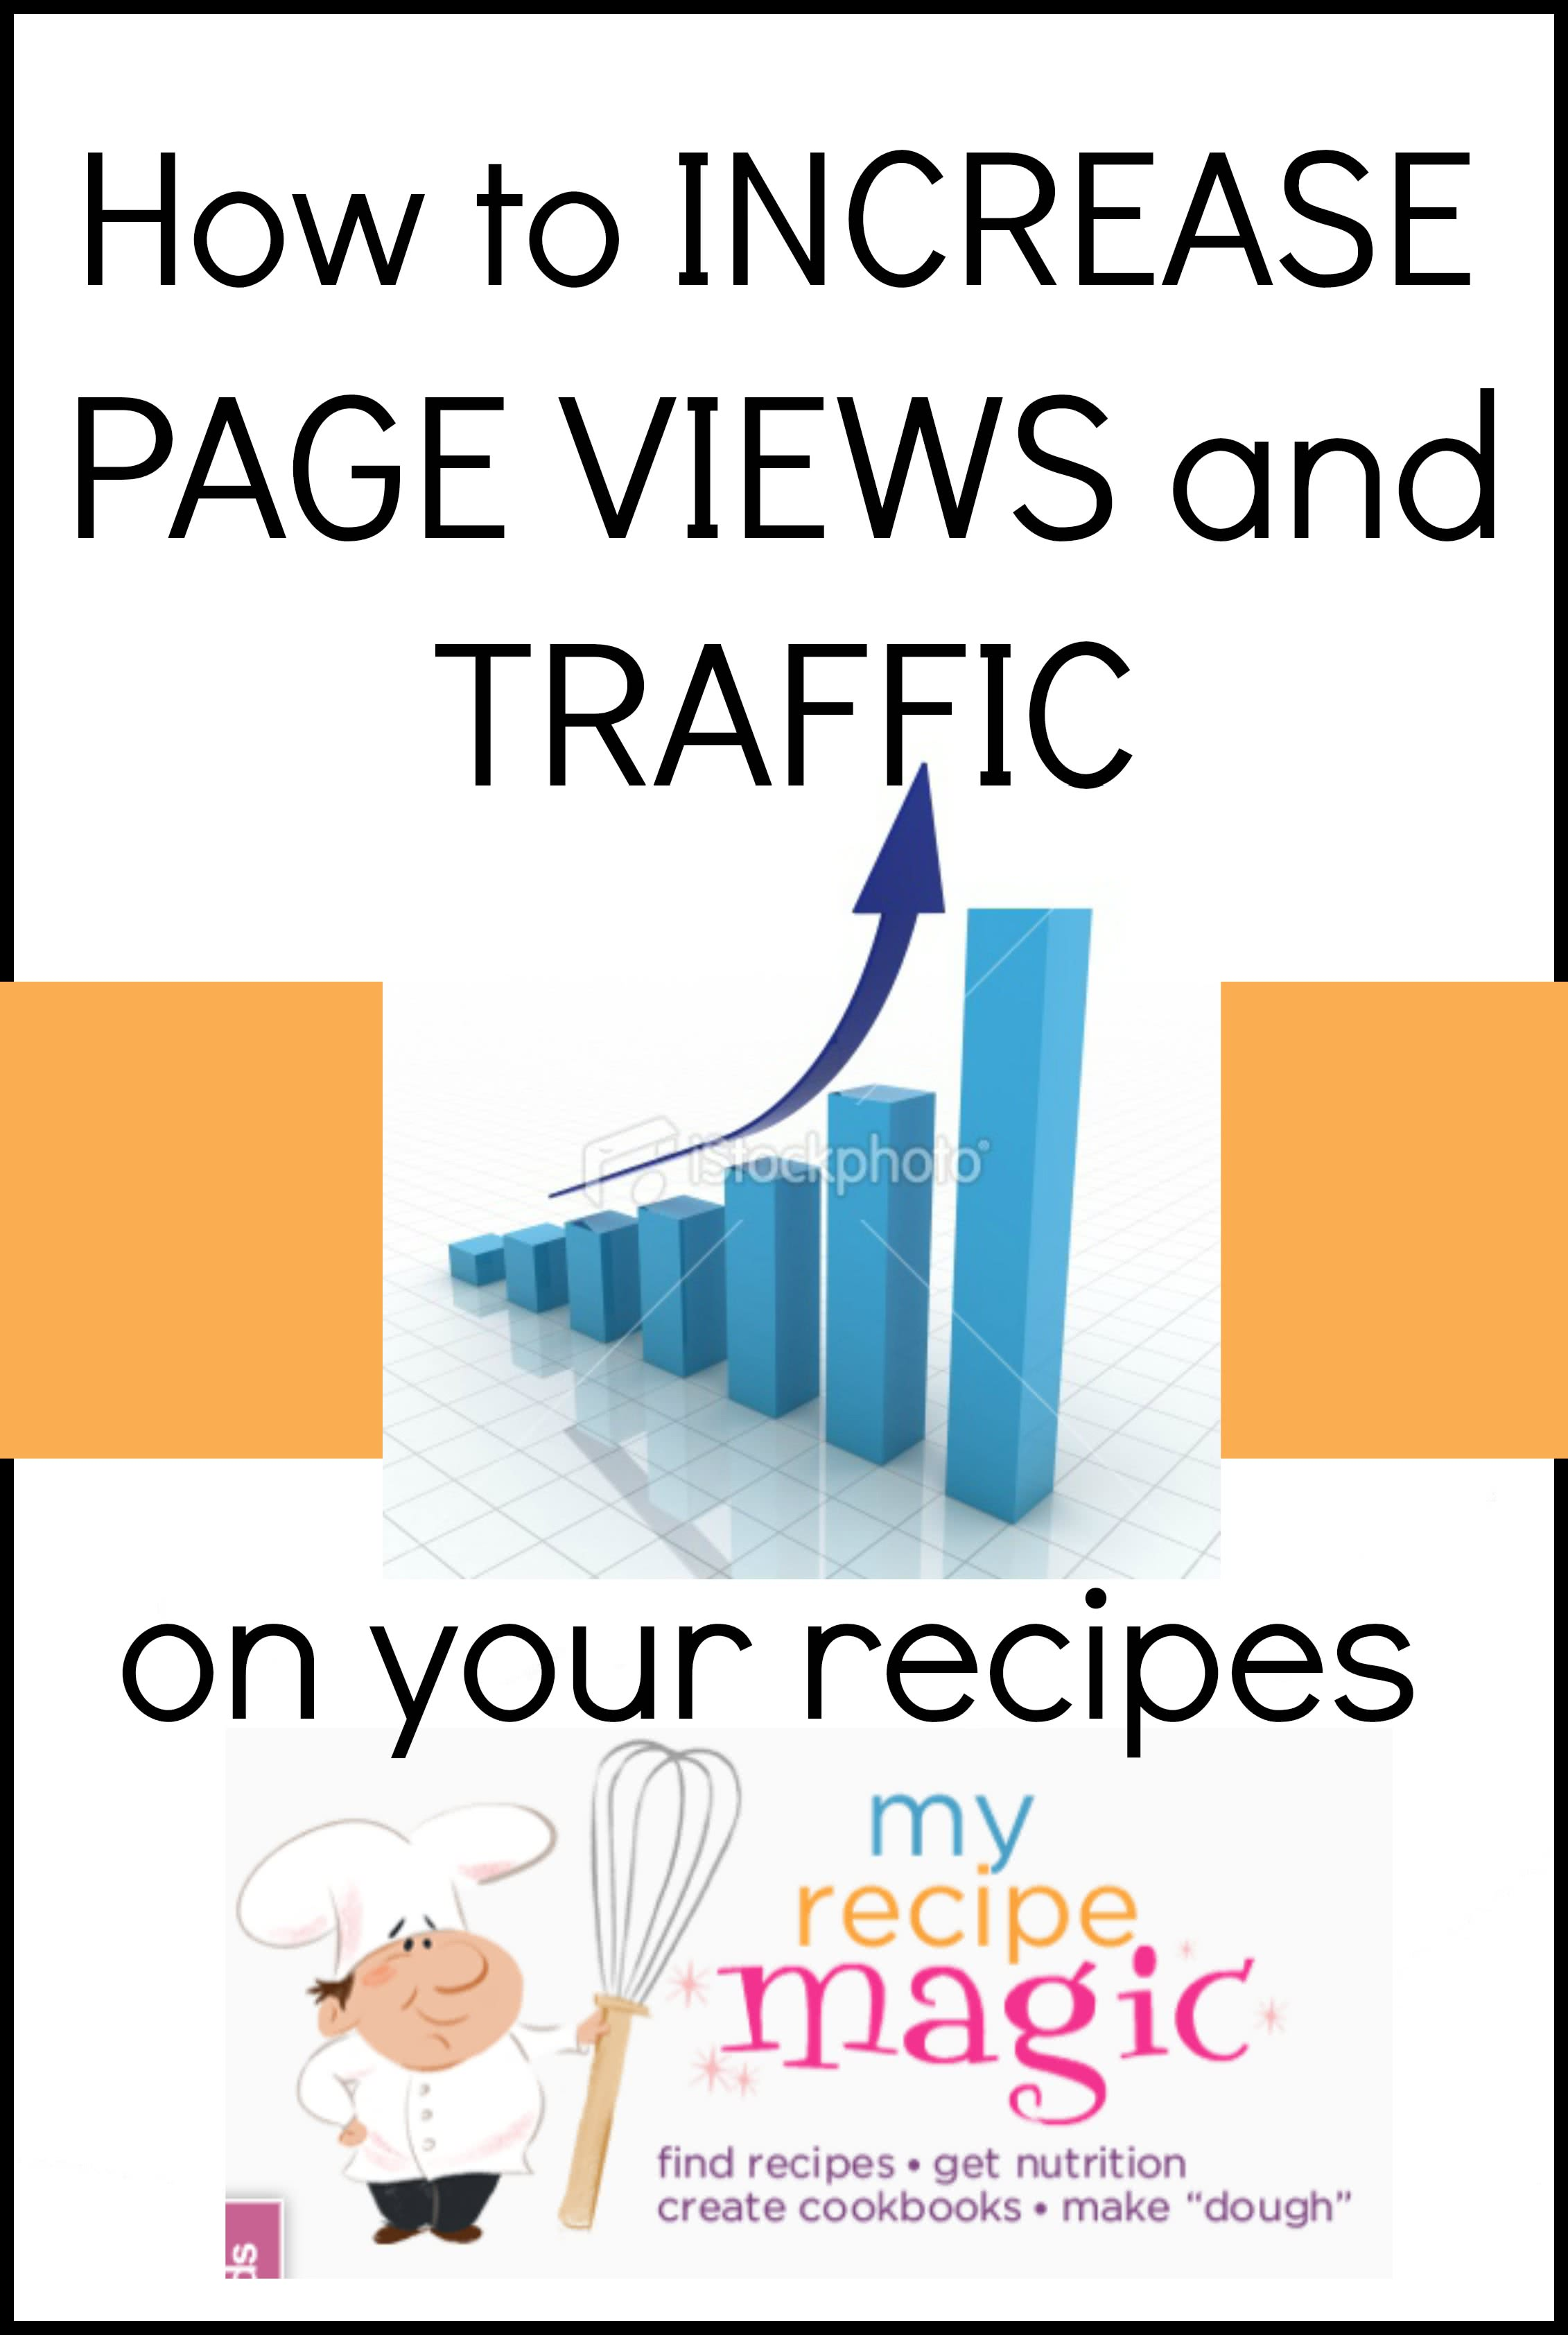 How to increase page views AFTER sharing a recipe on MyRecipeMagic.com